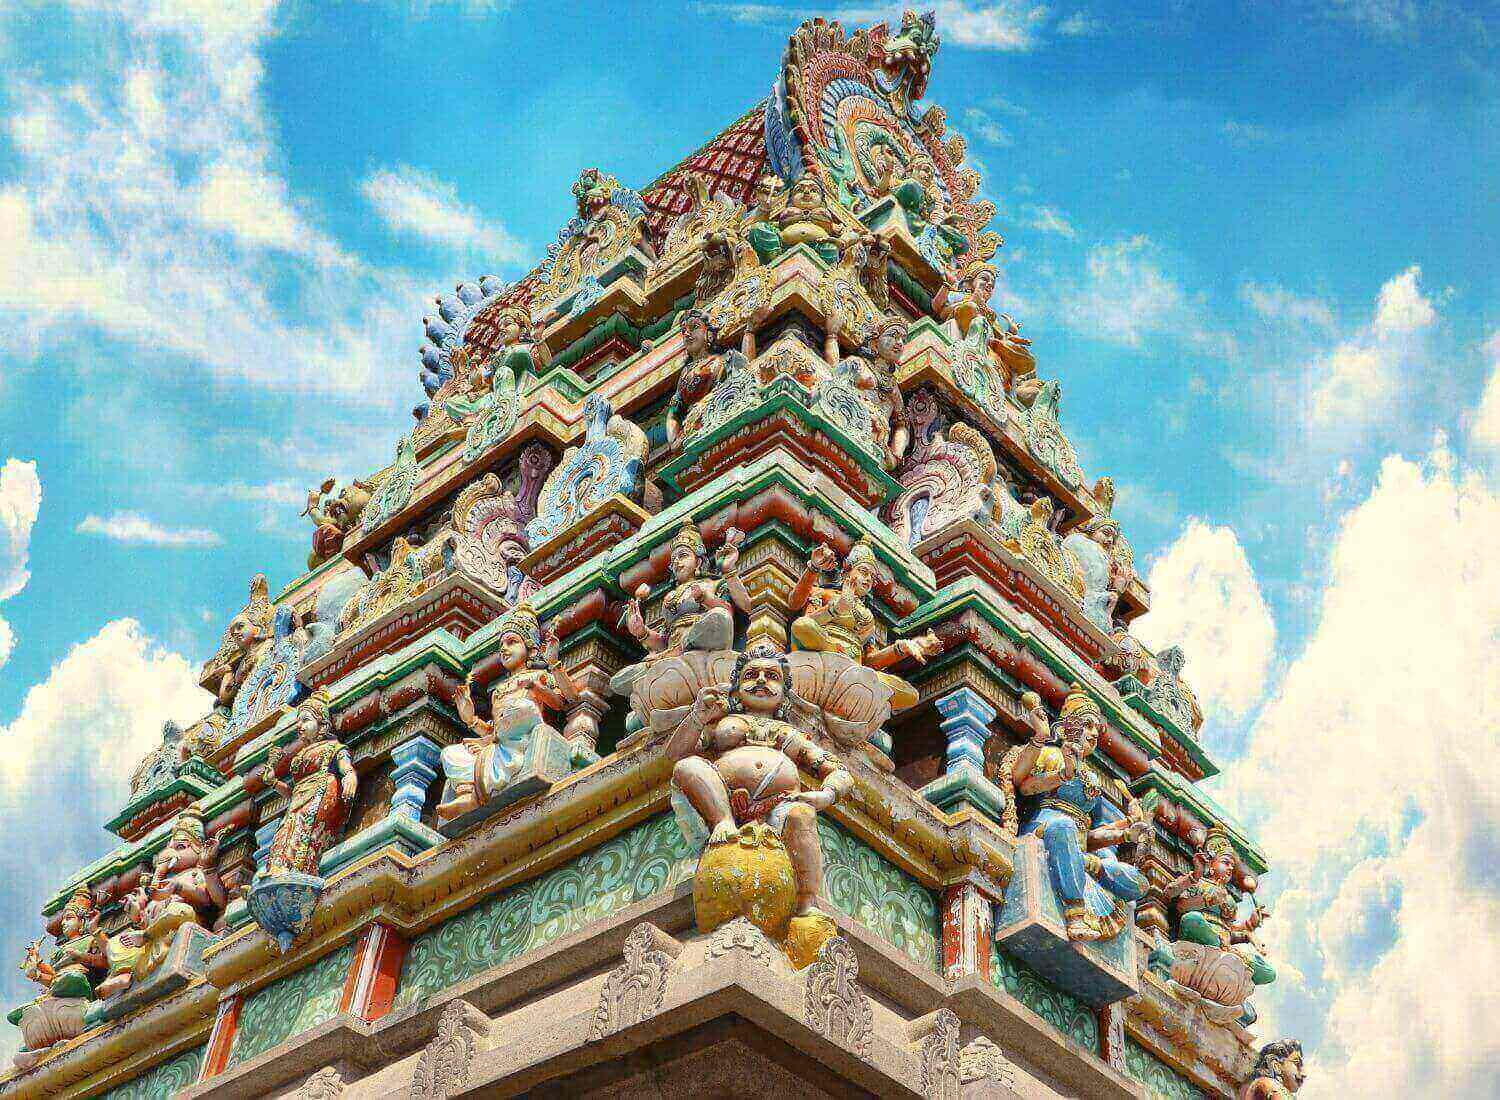 Top 15 Largest Hindu Temples Of The World